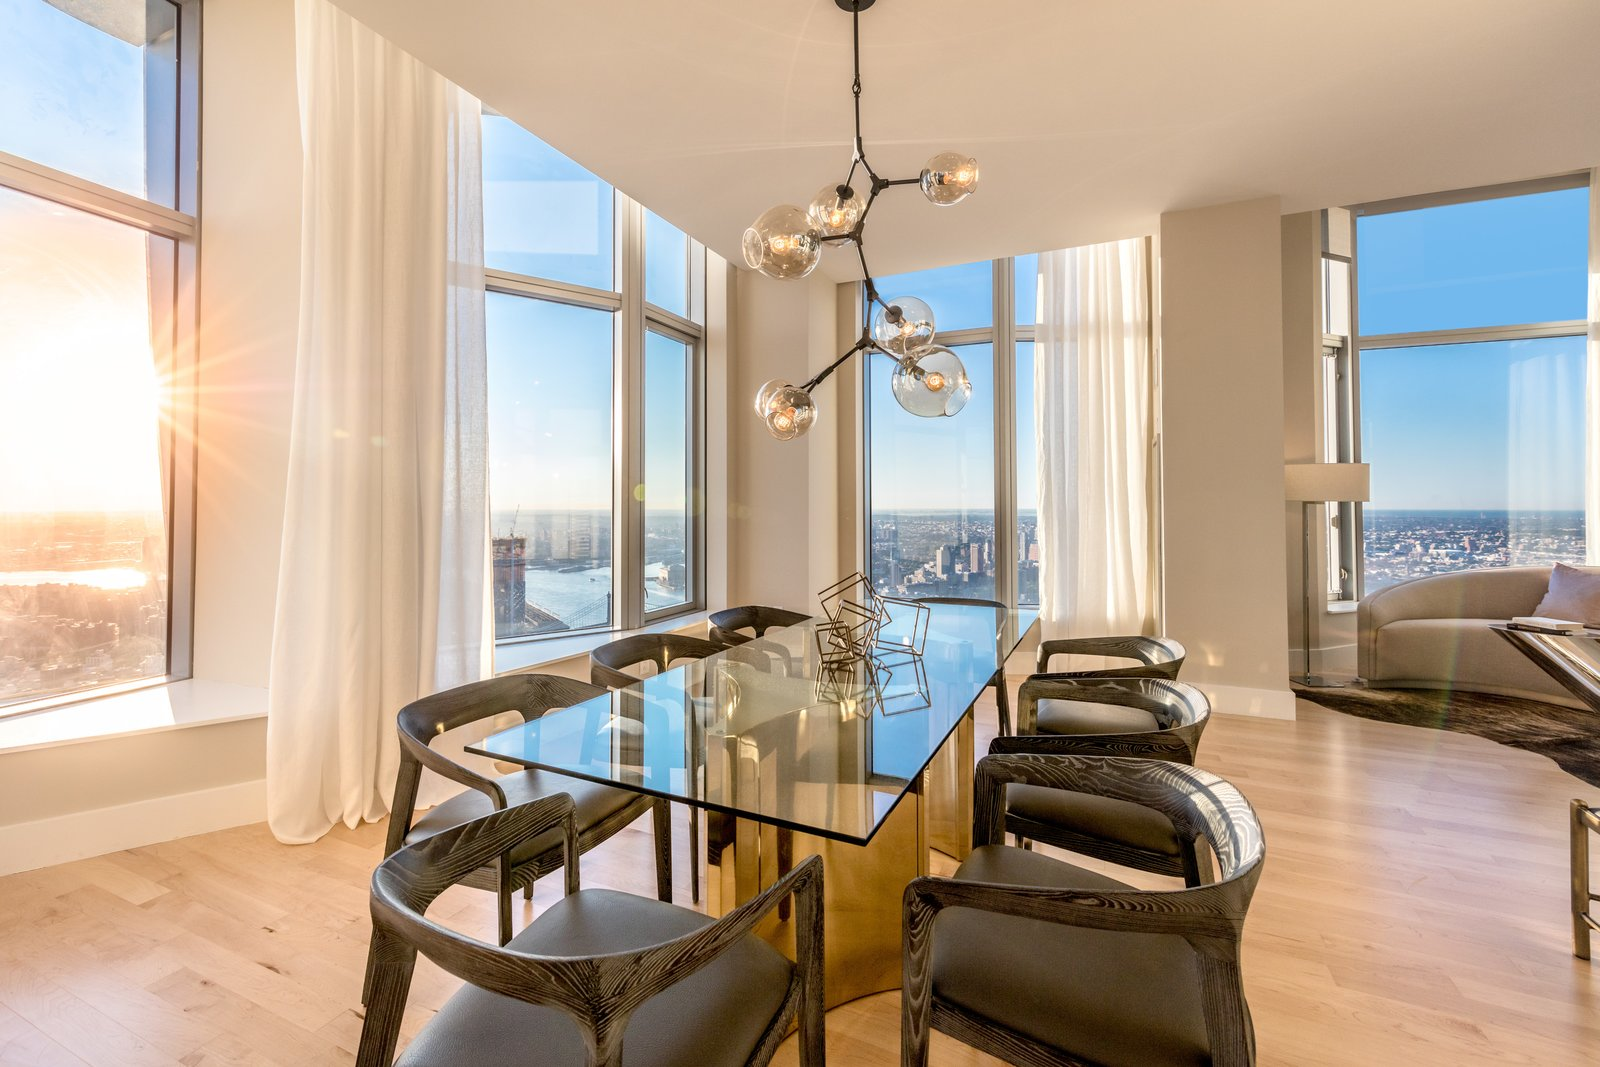 Photo 5 of 9 in Tour This Frank Gehry-Designed Penthouse in NYC That's Back on the Market